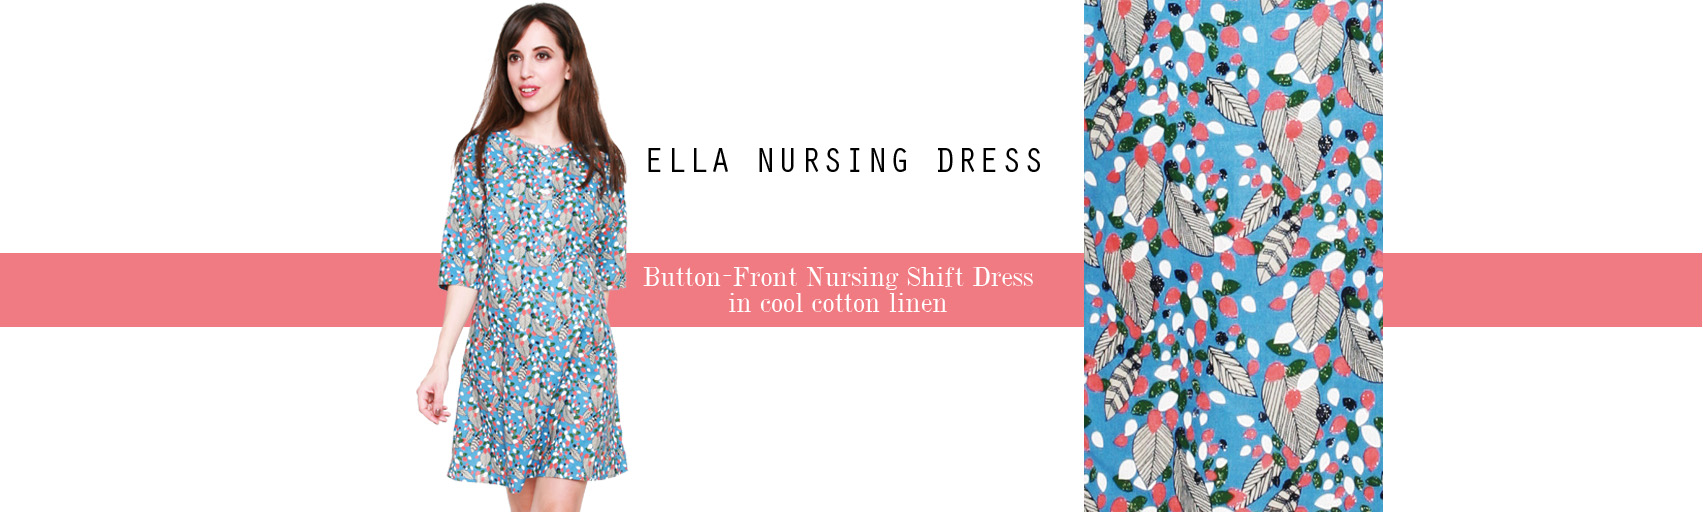 Slider_ella_dress